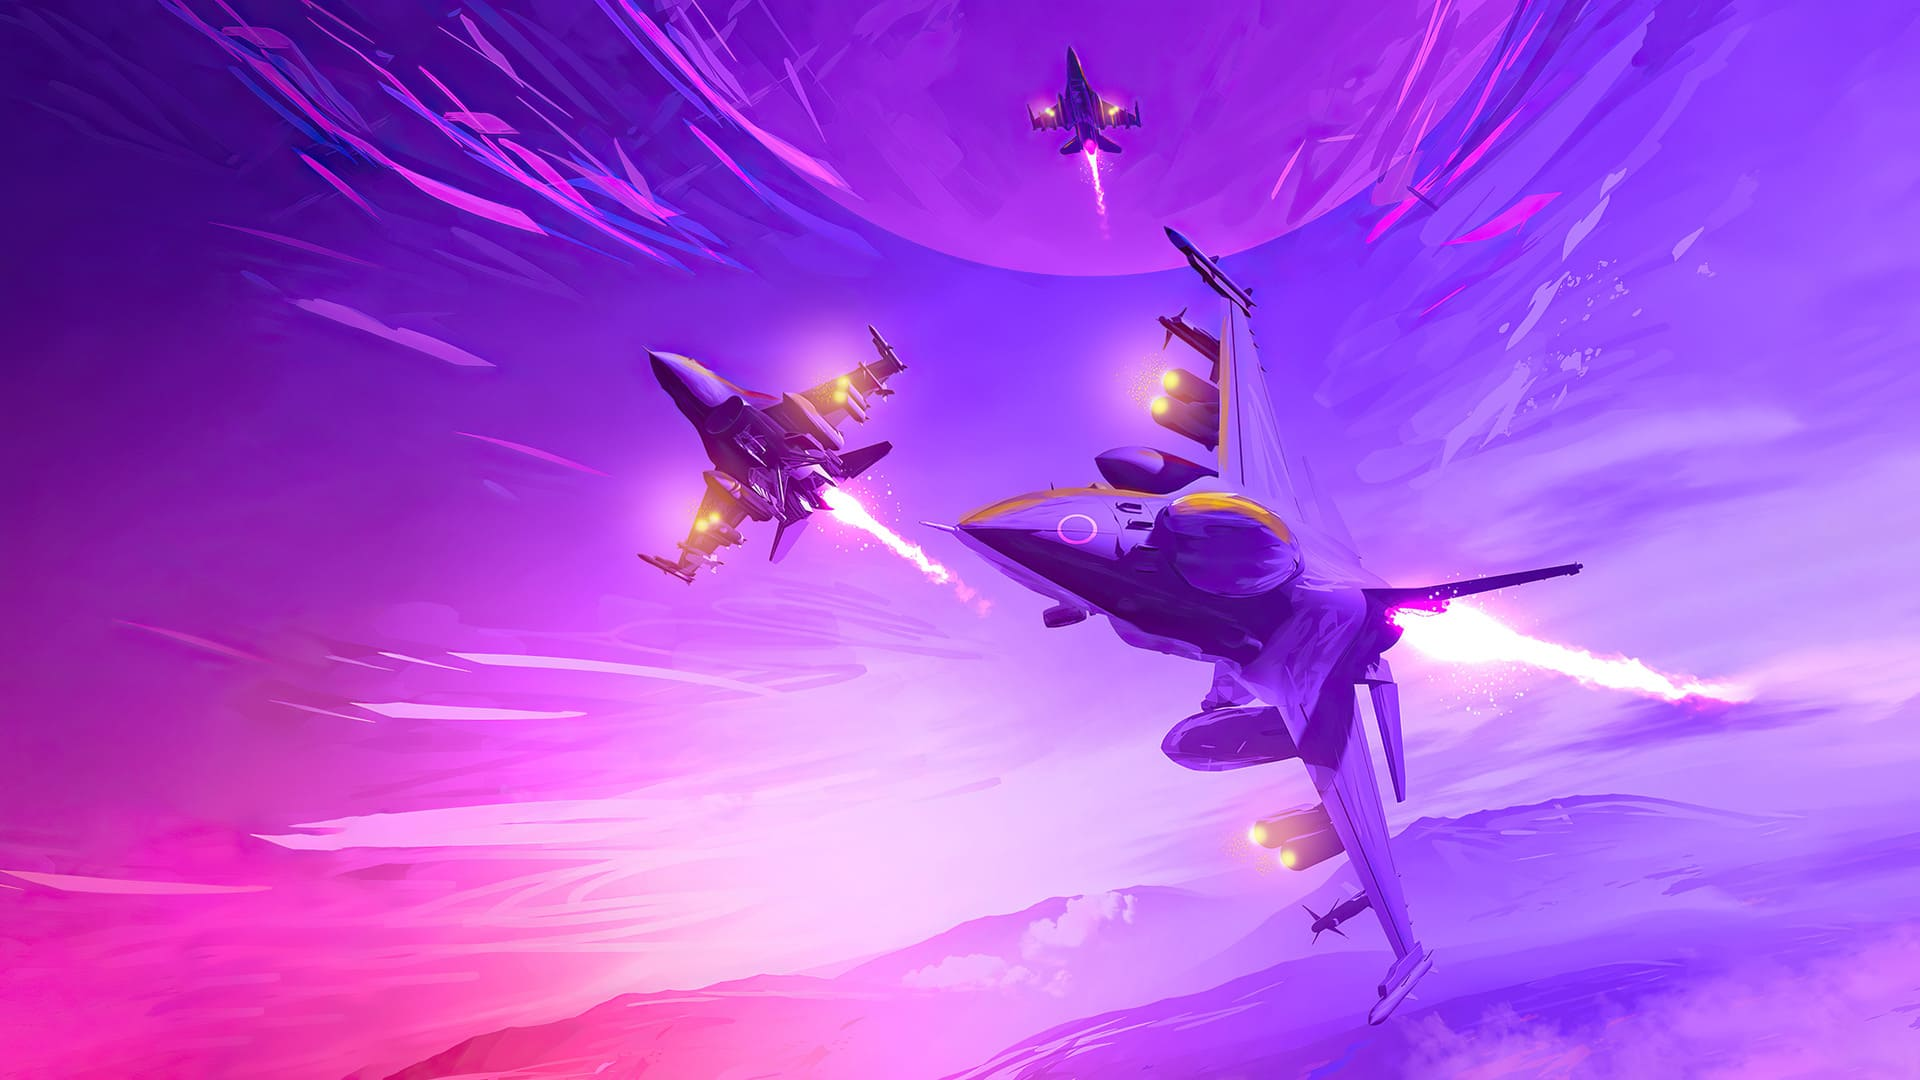 Purple Aesthetic Computer Wallpapers - Wallpaper Cave